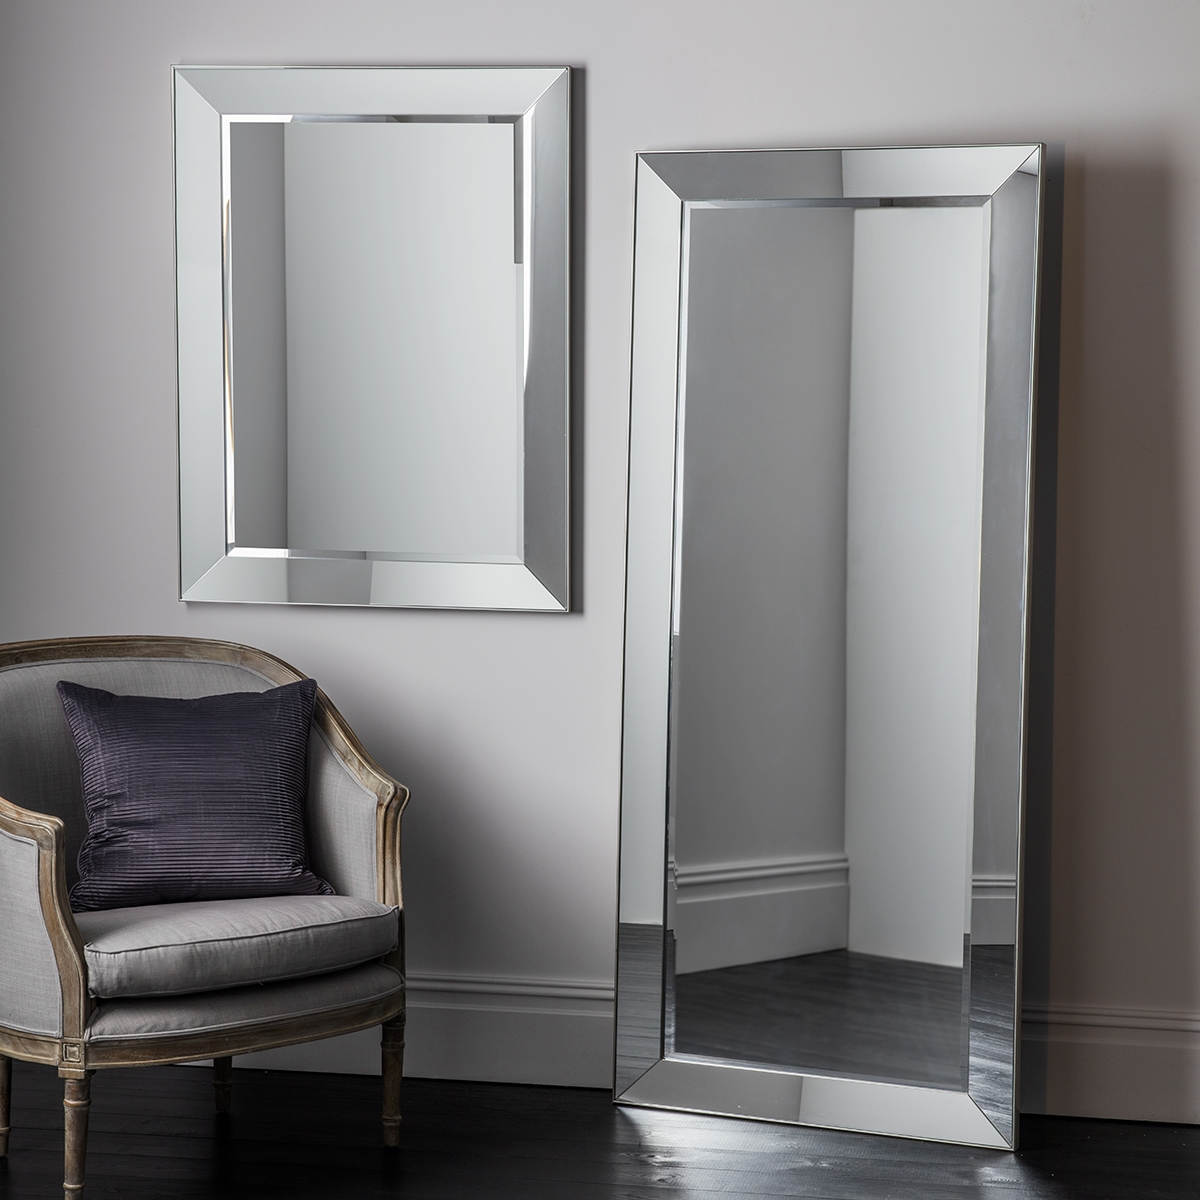 Large Glass Framed Wall Mirrors